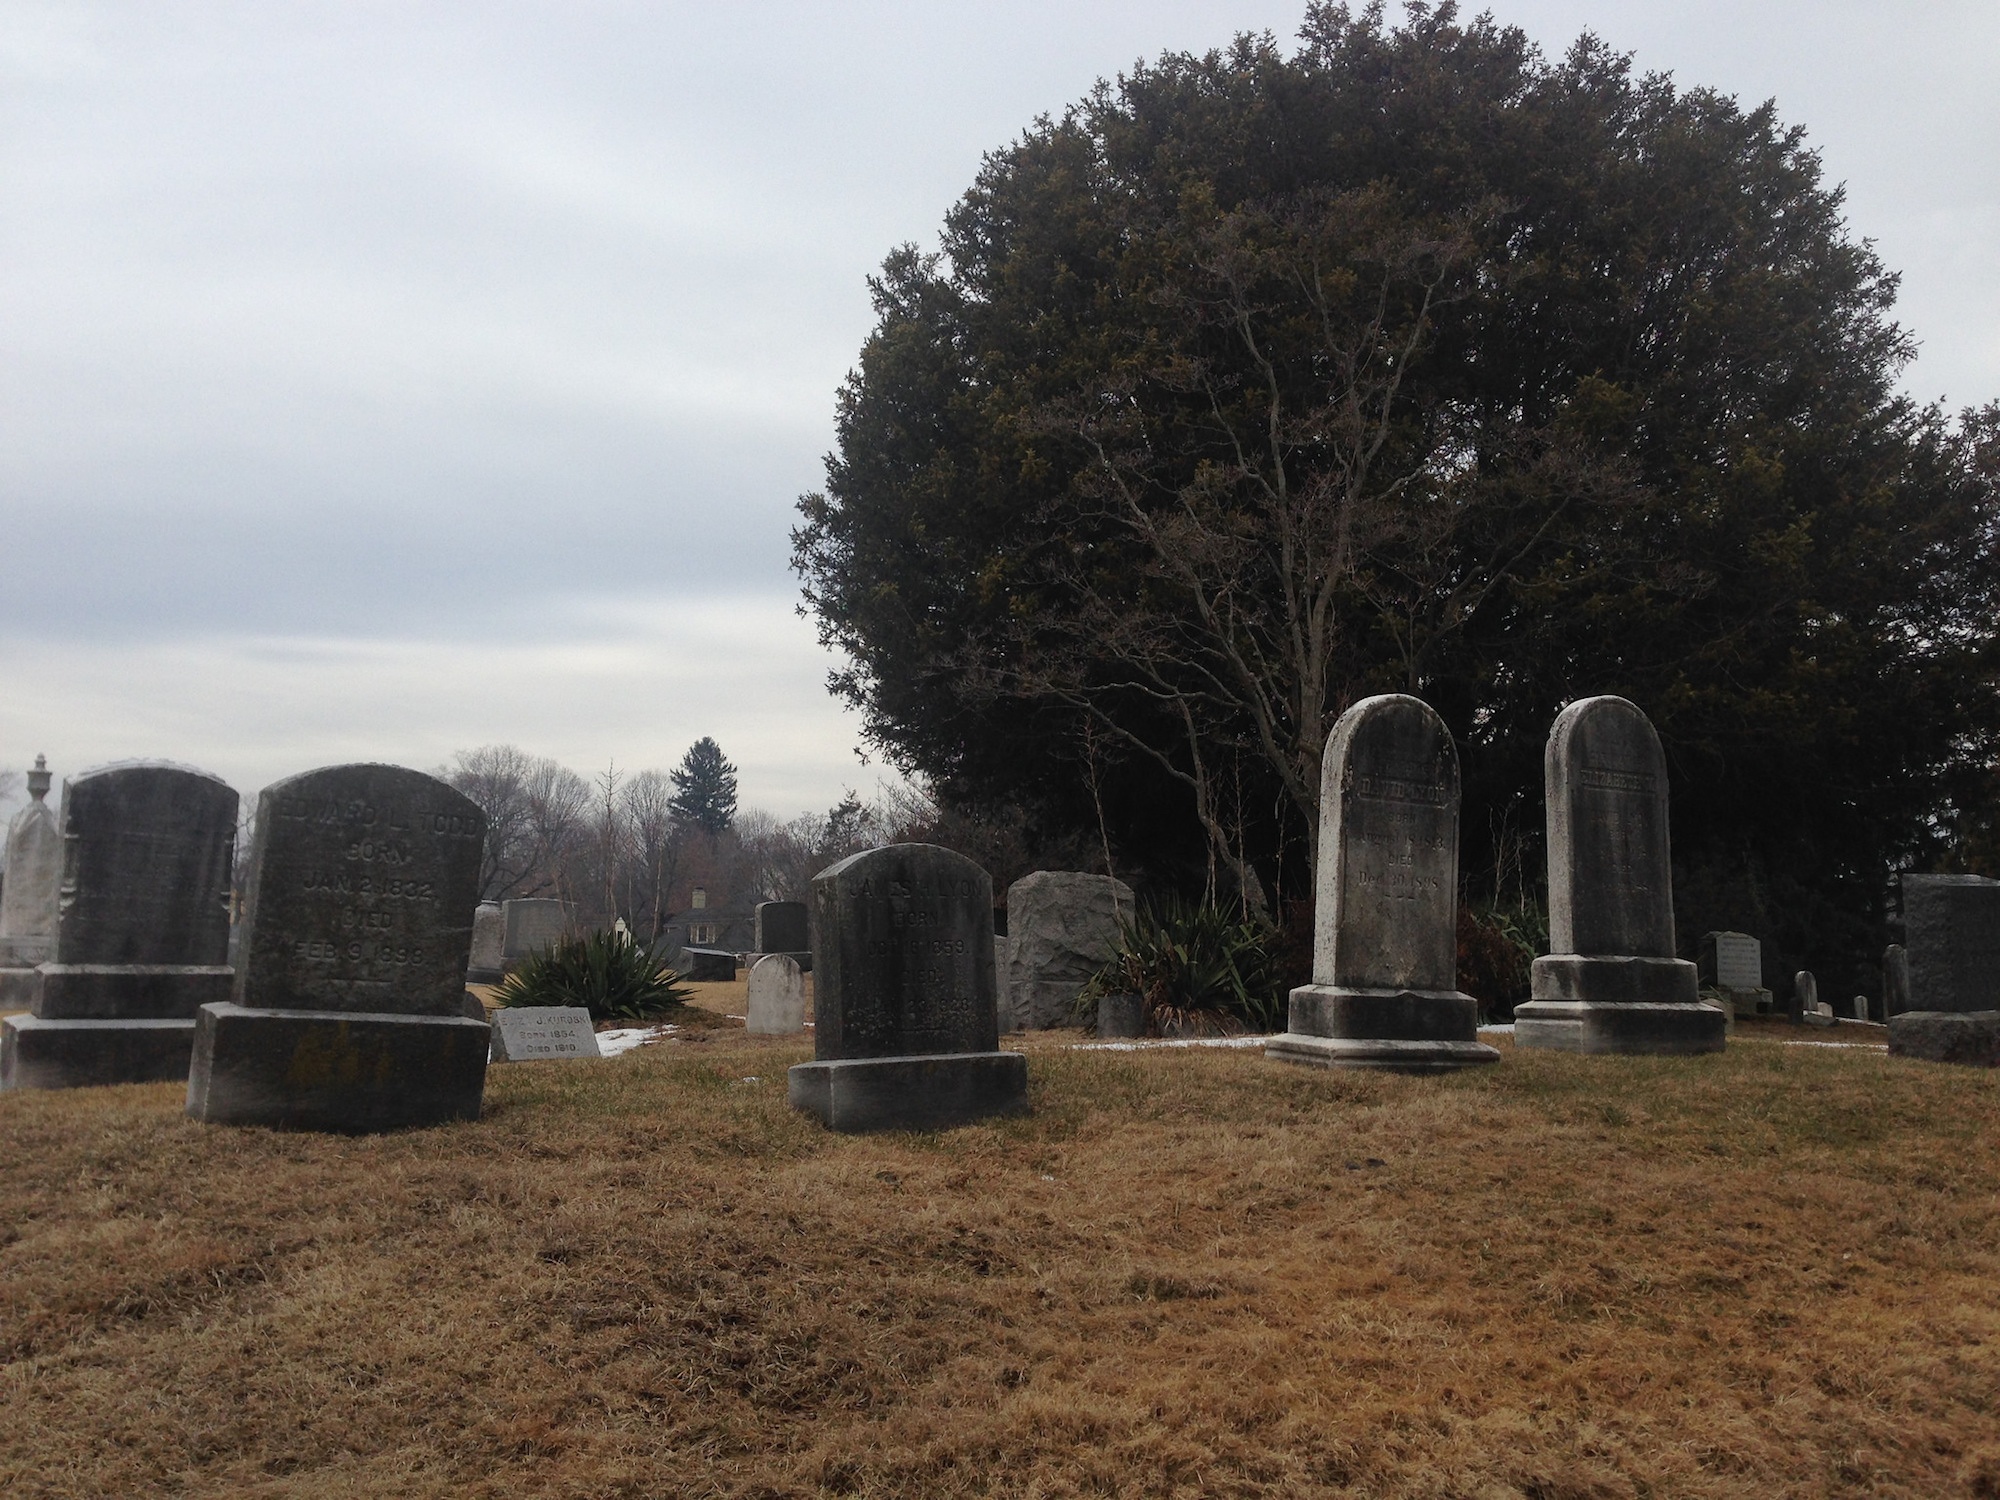 Infamous in Connecticut folklore is the Union Cemetery in Easton, CT, home of the White Lady. (Neil R./Creative Commons)